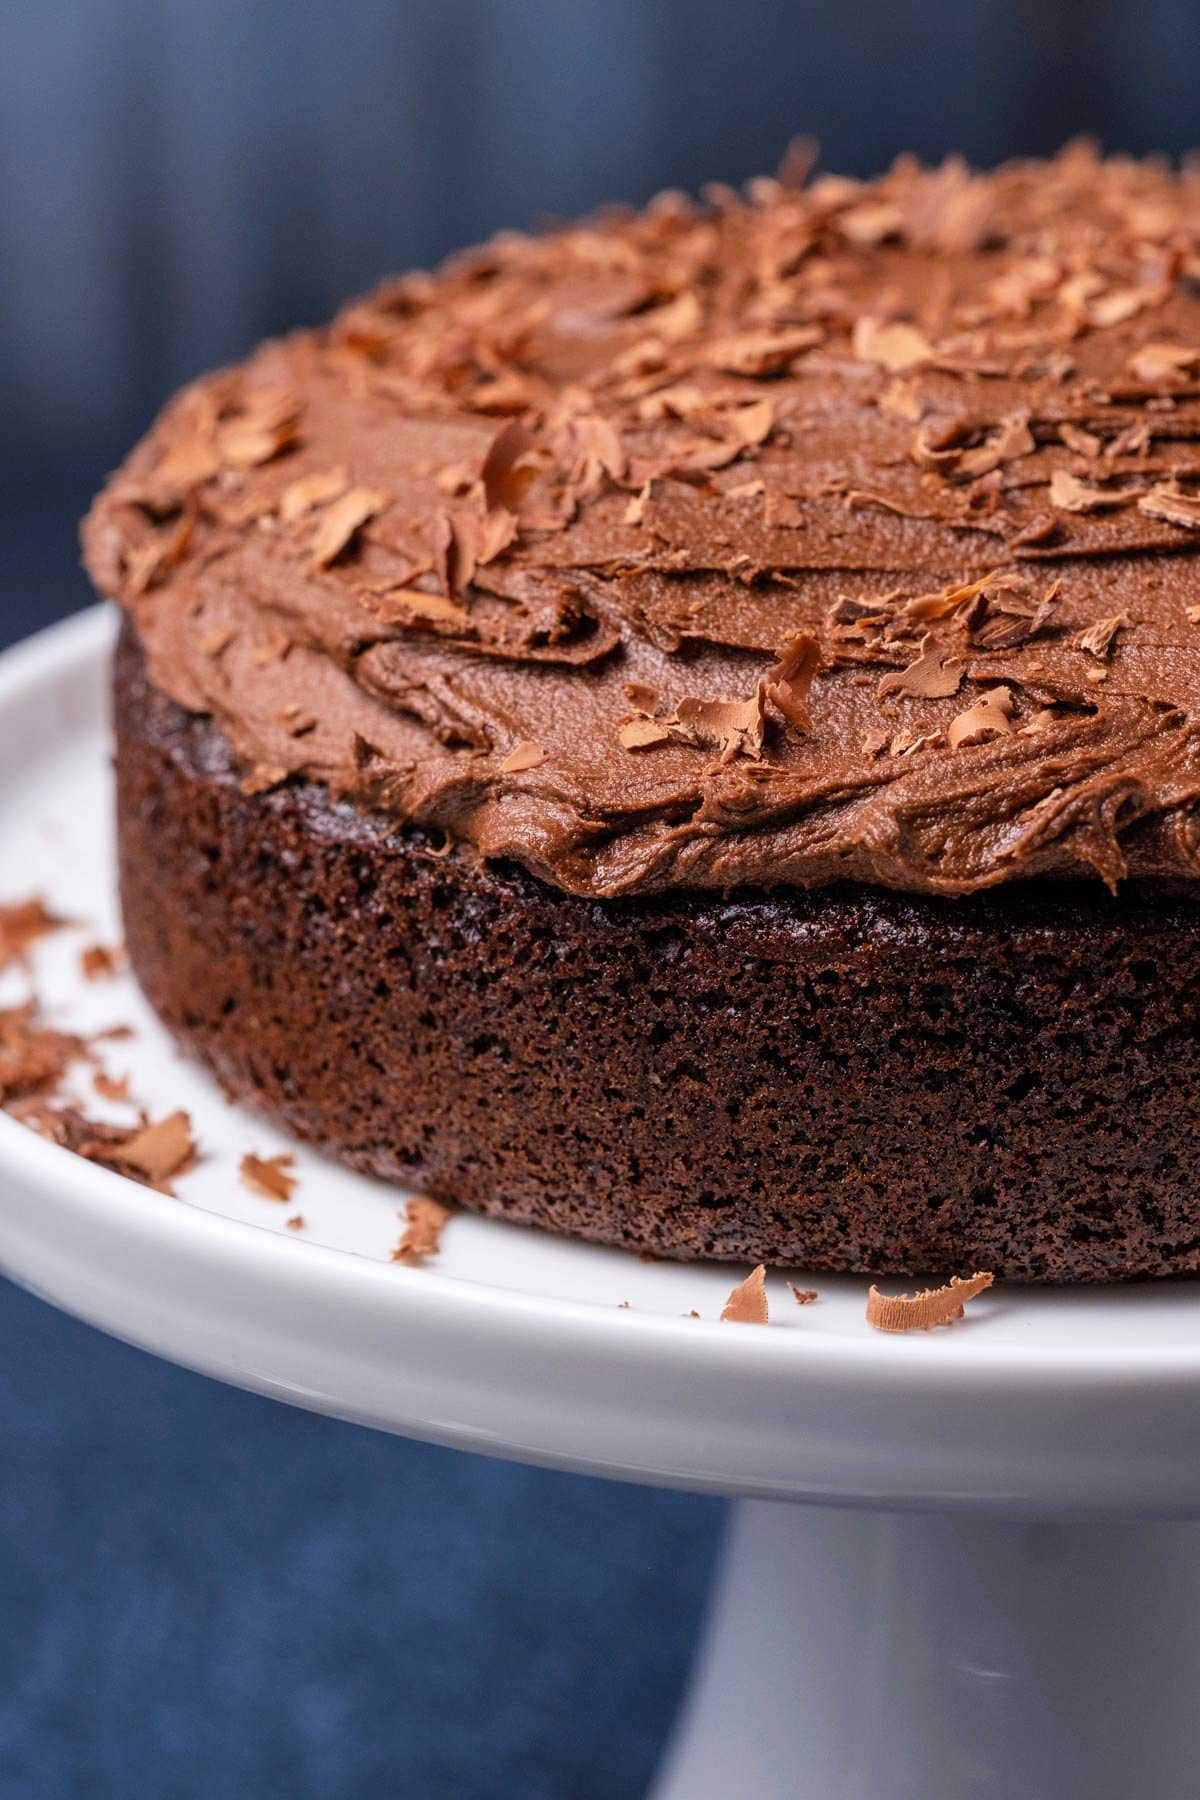 Photo of a small chocolate cake on a white cake stand.